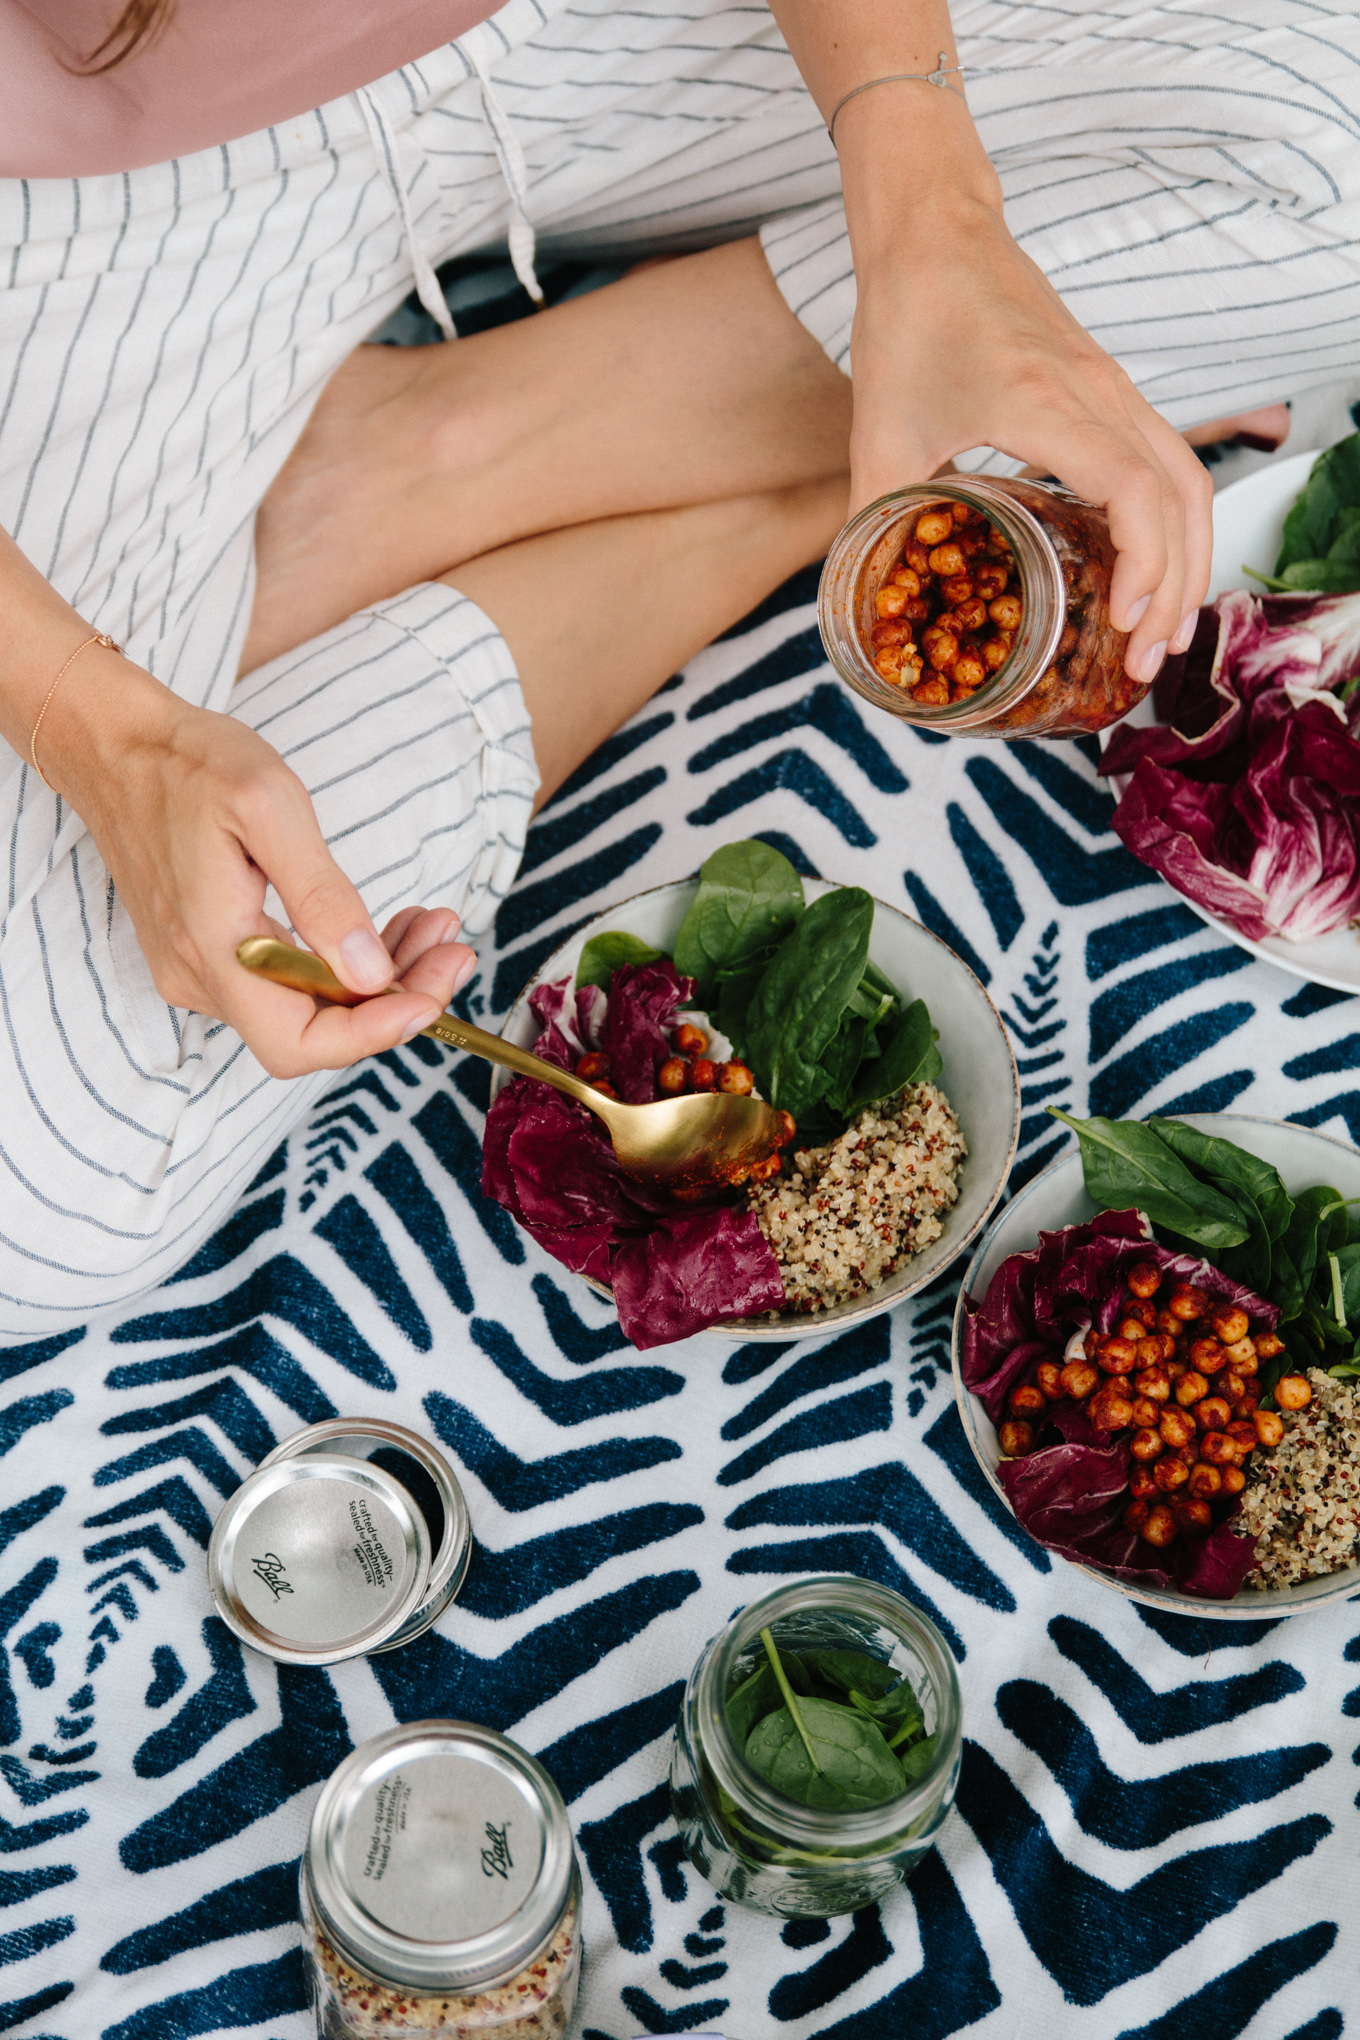 SPAR Mahlzeit! Urban Edition - Urbanes Picknick | The Daily Dose